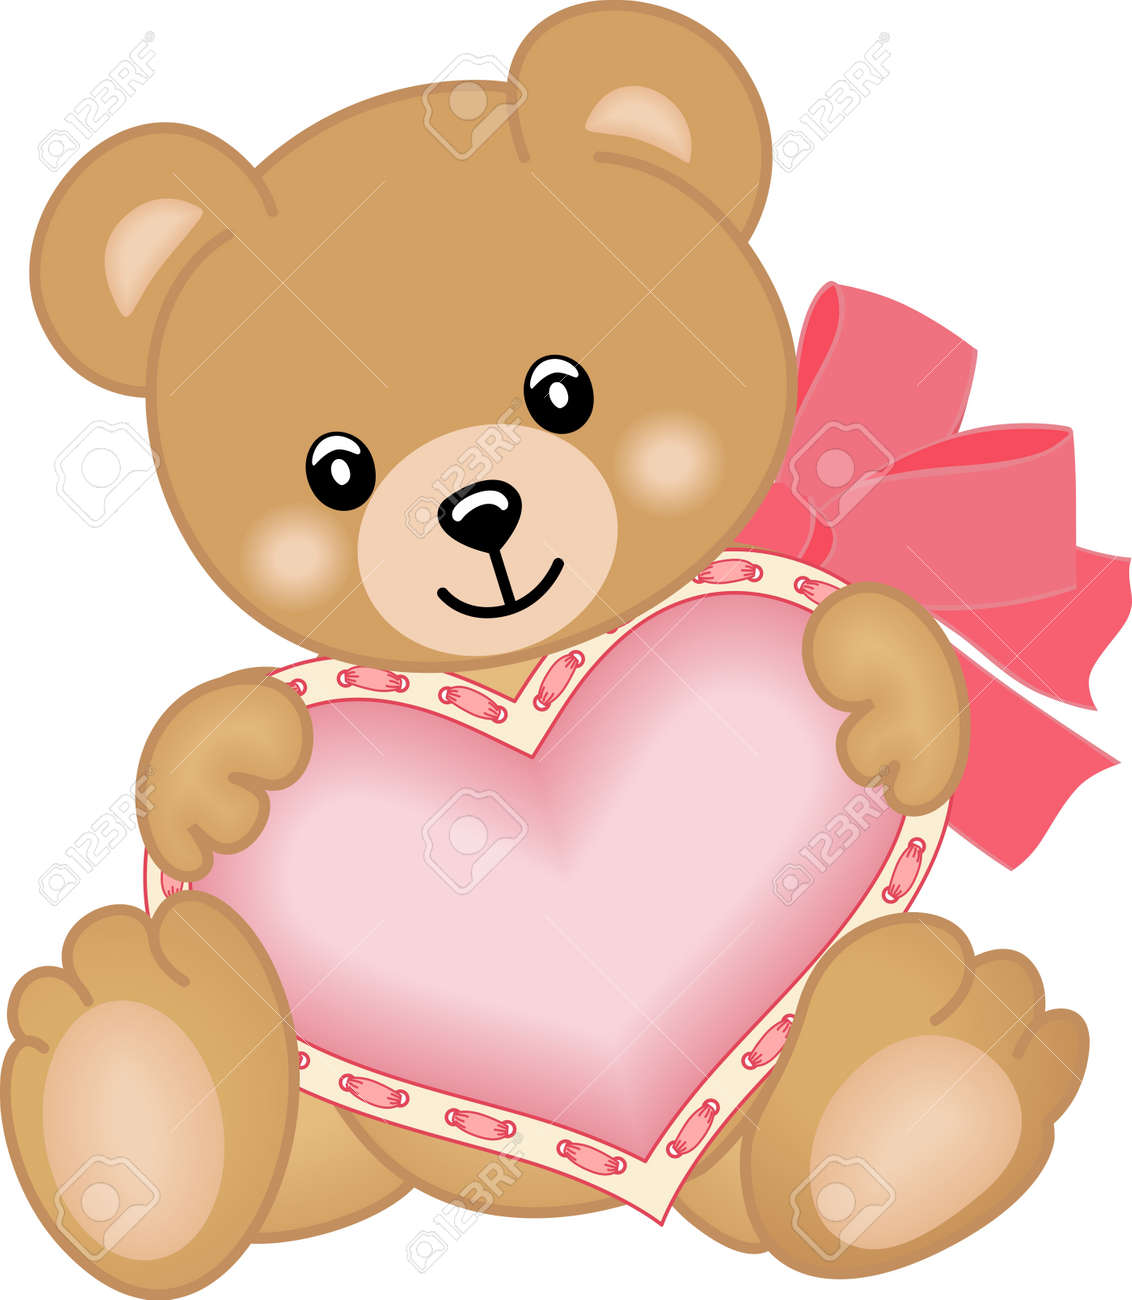 Cute Teddy Bear With Heart Royalty Free Cliparts, Vectors, And ...